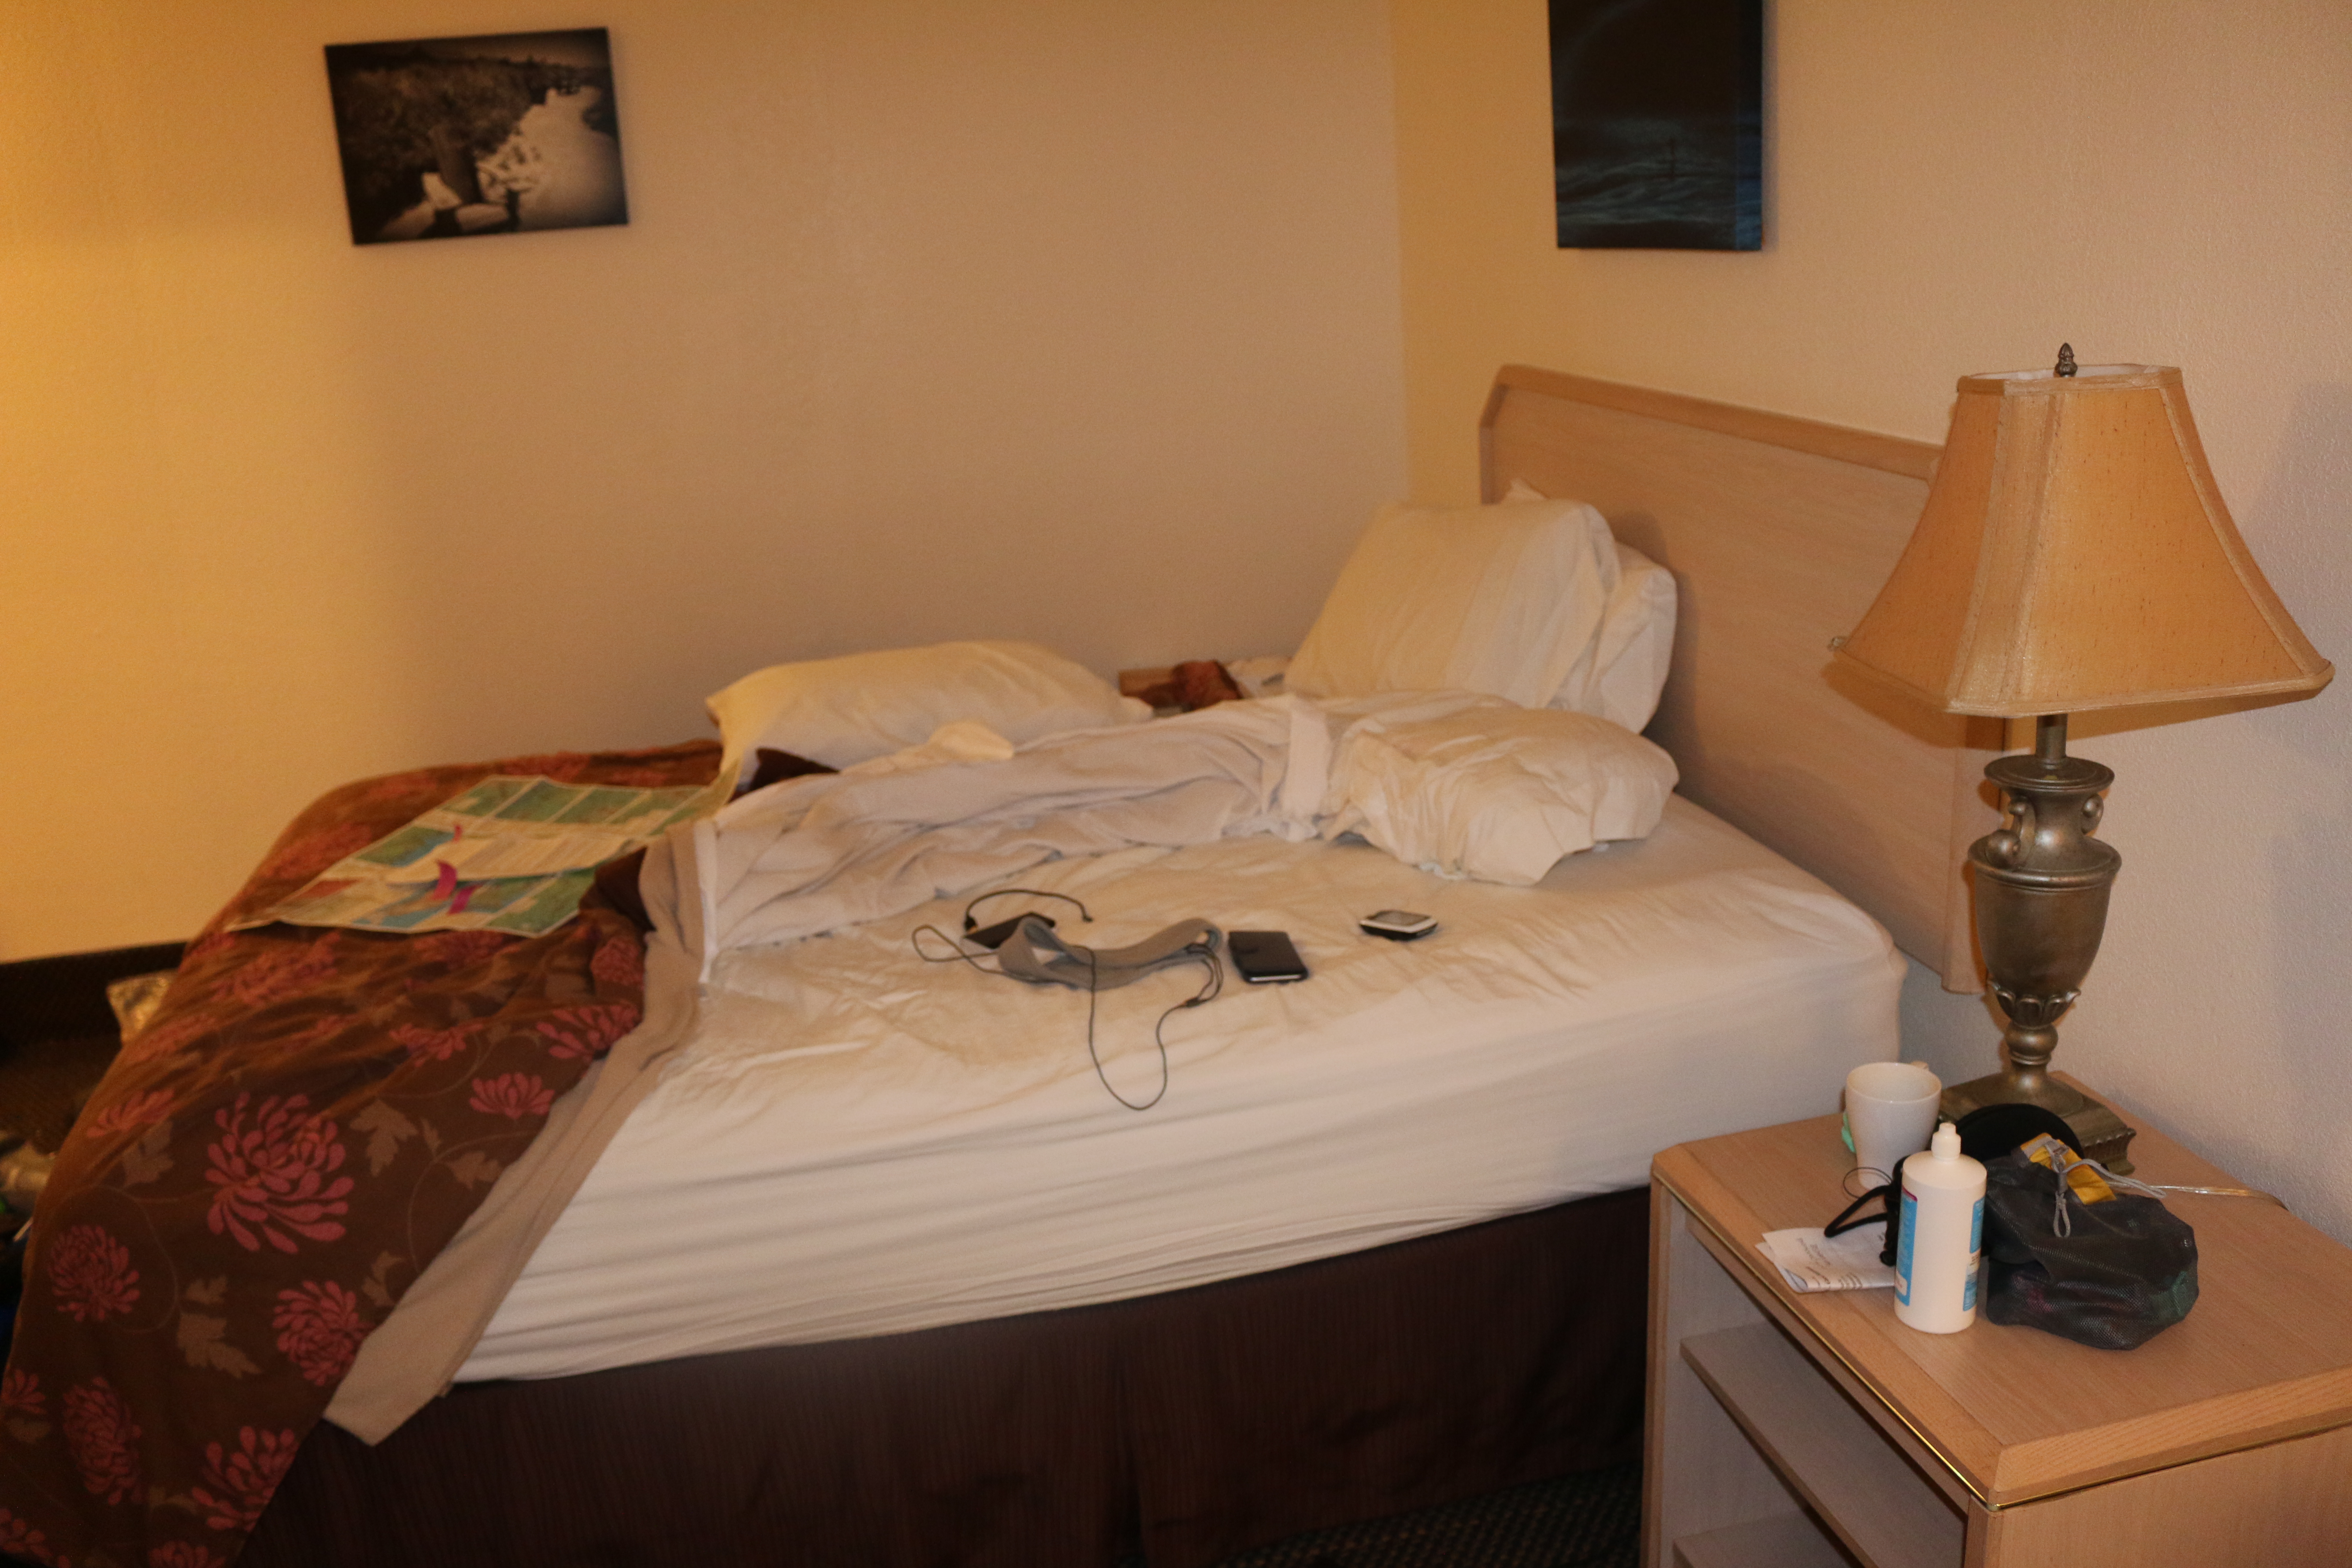 A hotel room bed, unmade and cluttered.